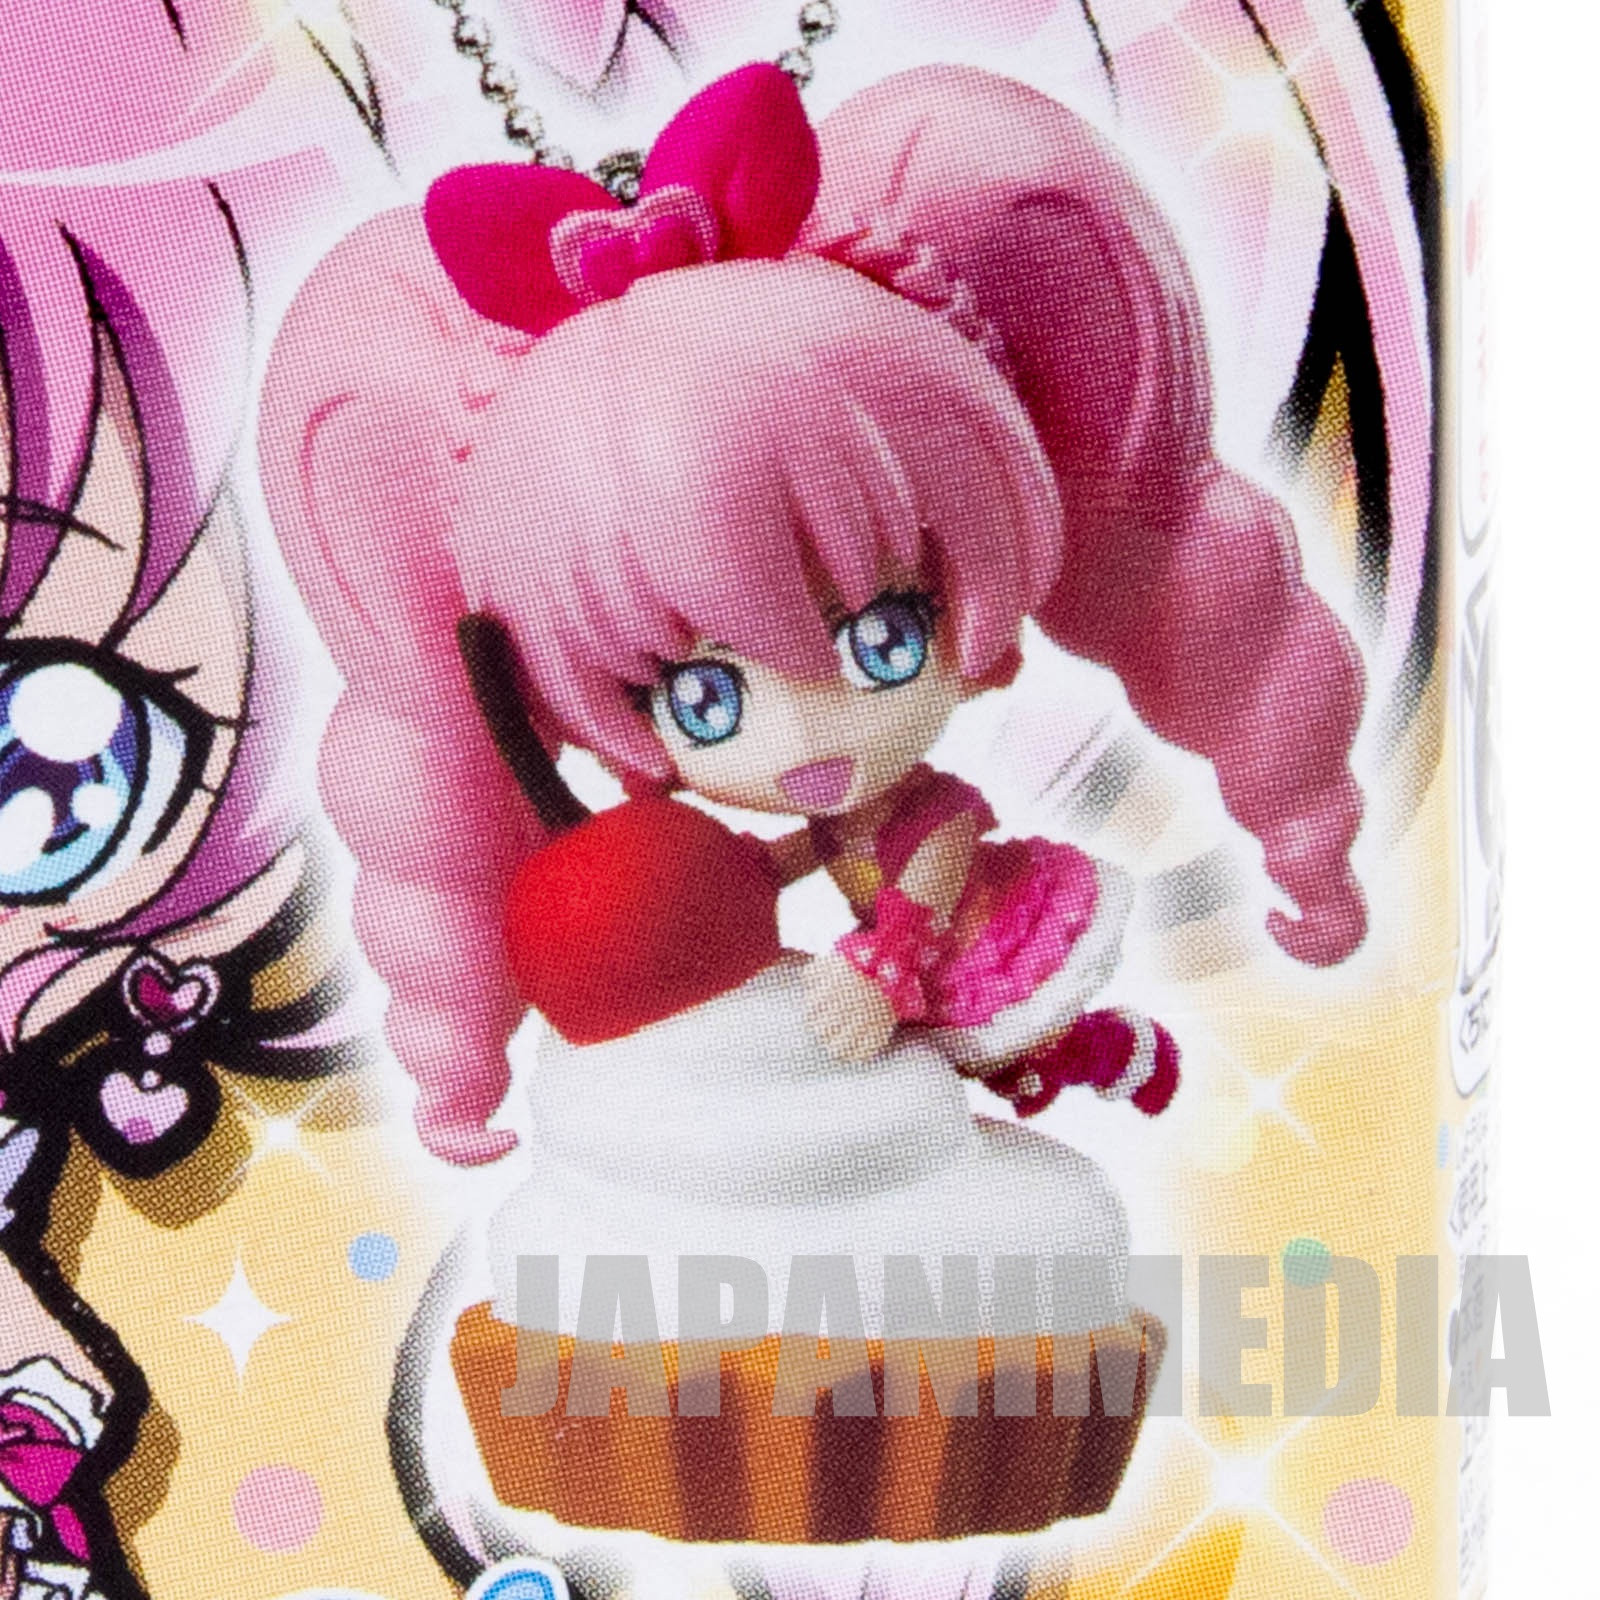 Suite PreCure Cure Melody PreCure Sweets mascot Figure Keychain JAPAN ANIME